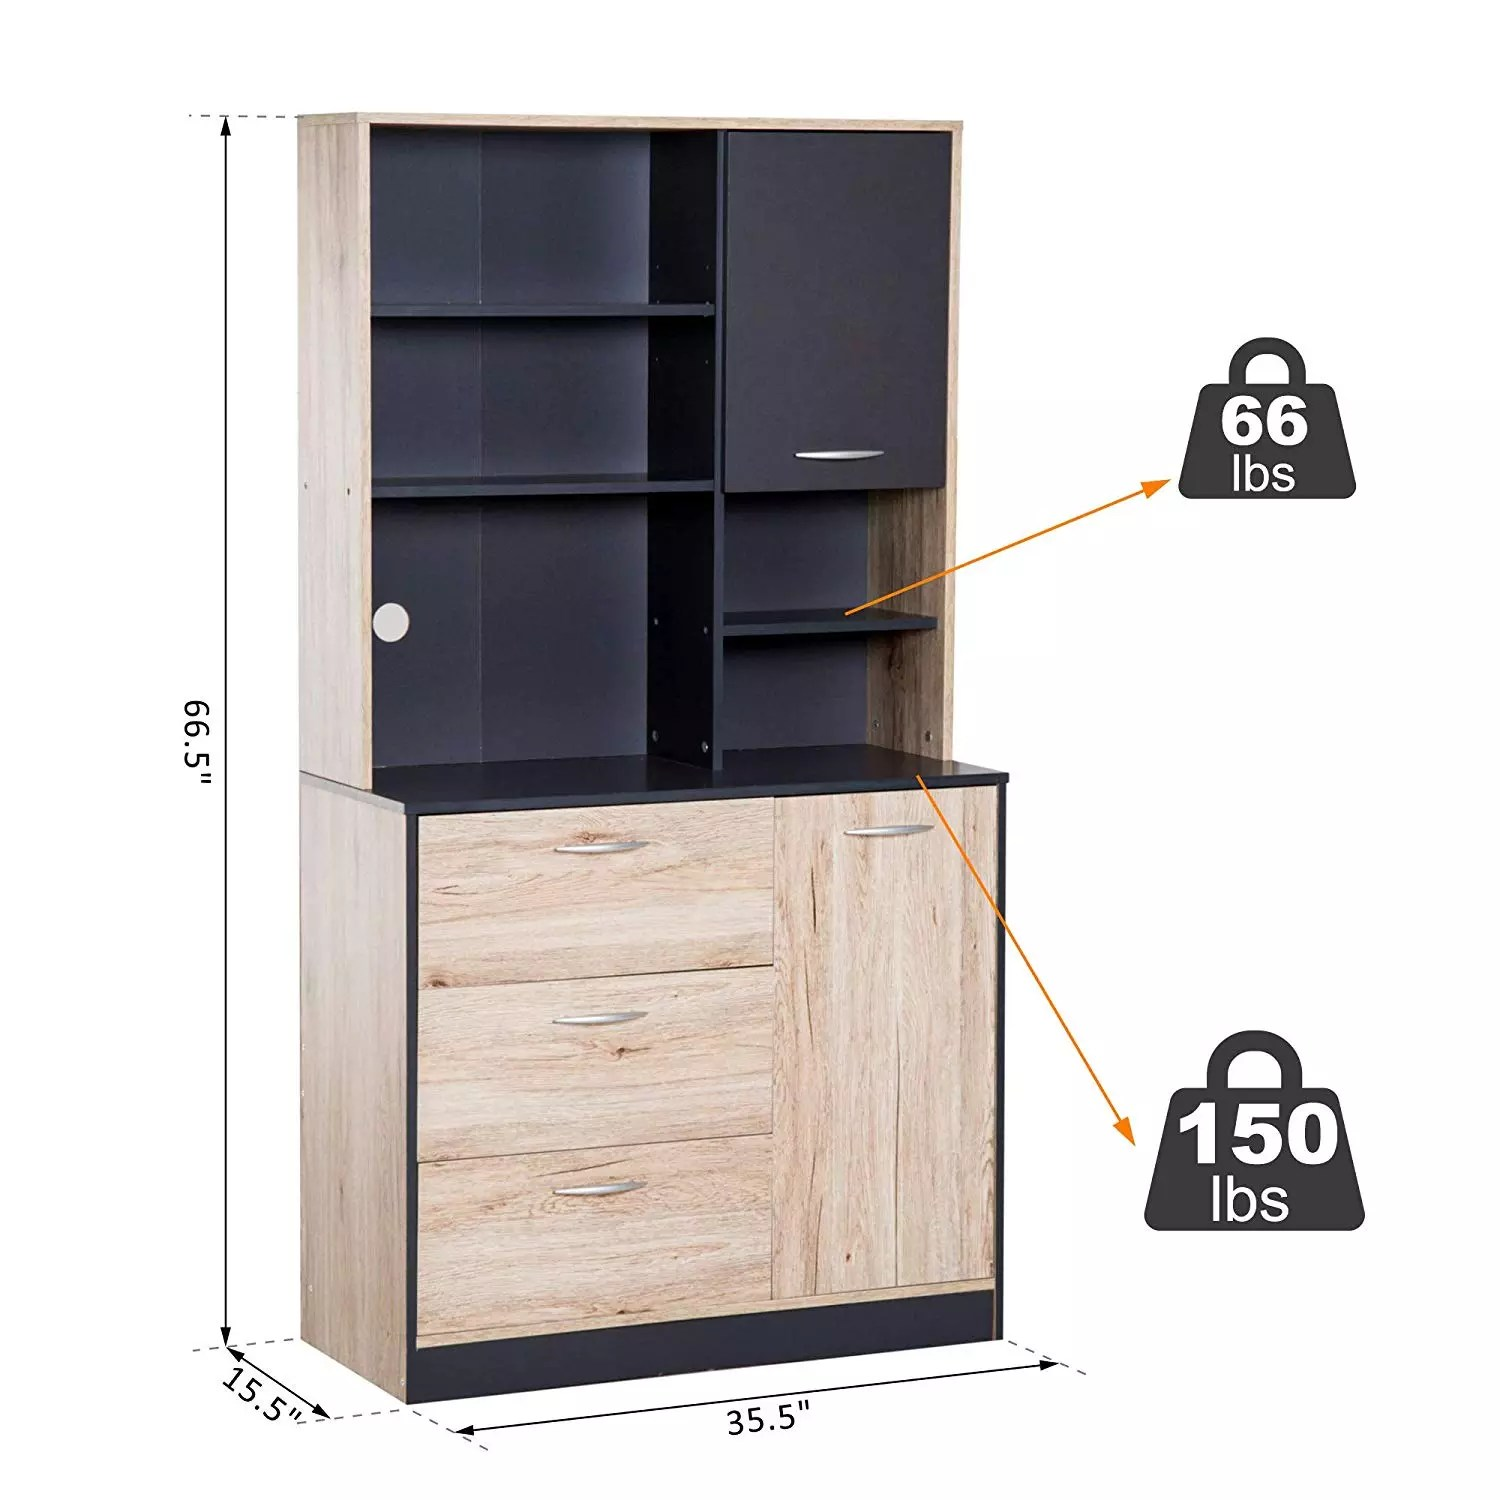 E1 Grade Engineered Wood Modern Freestanding Kitchen Buffet Cabinet Design With Microwave Storage Hutch Black And Oak Buy Kitchen Cabinet Design Kitchen Storage Hutch Kitchen Buffet Cabinet Product On Alibaba Com